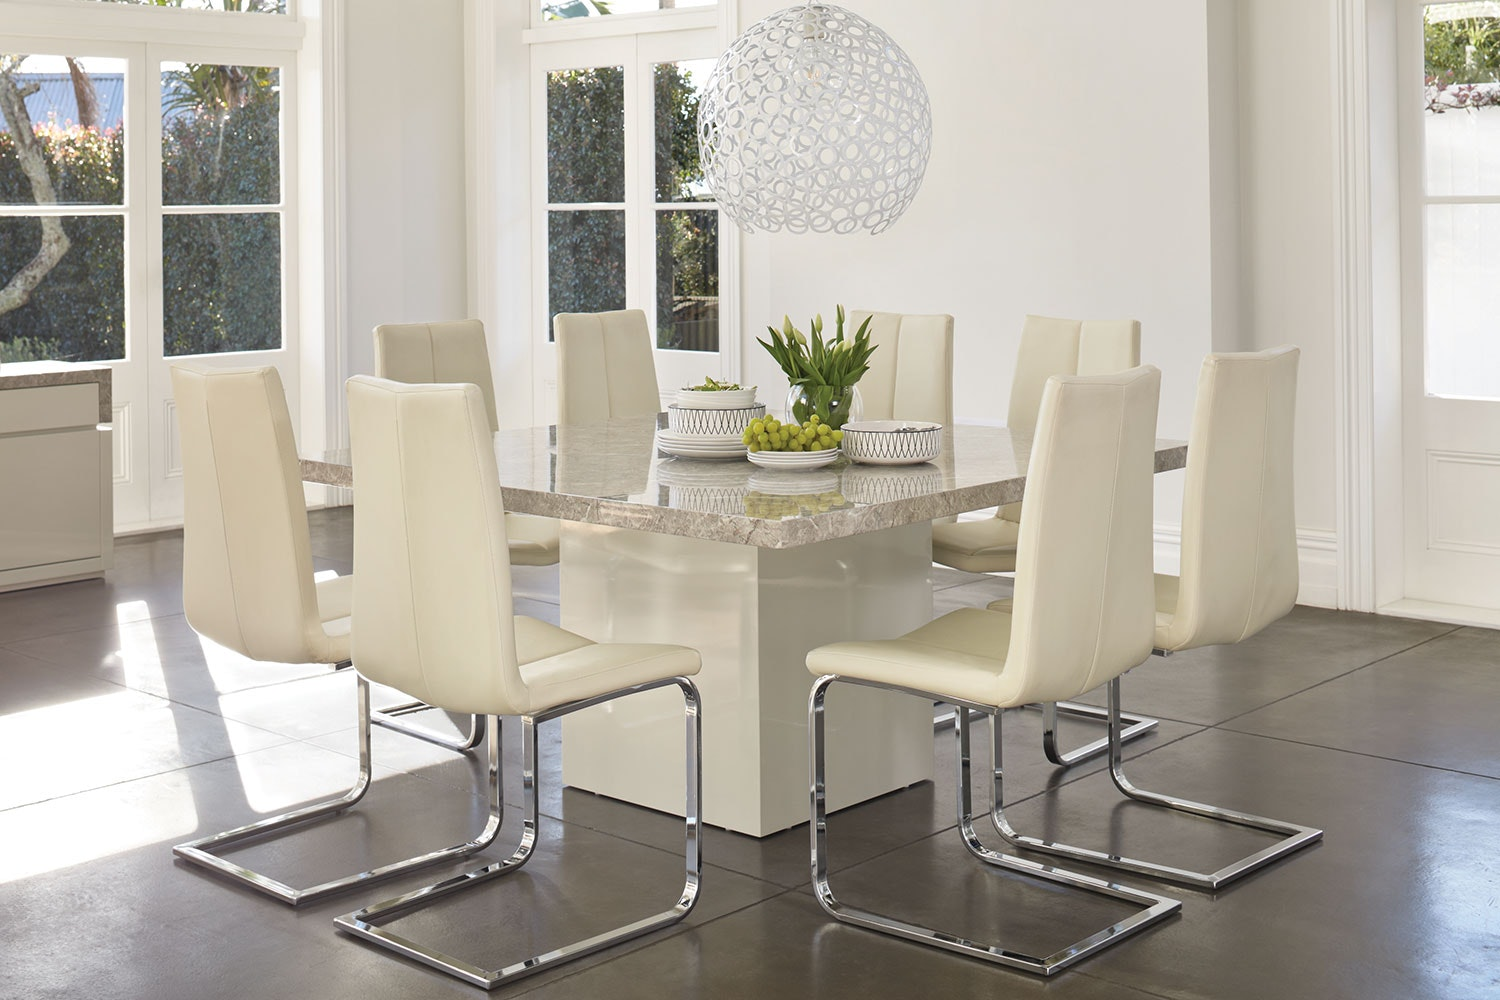 Marmo Square Dining Table by Insato Furniture